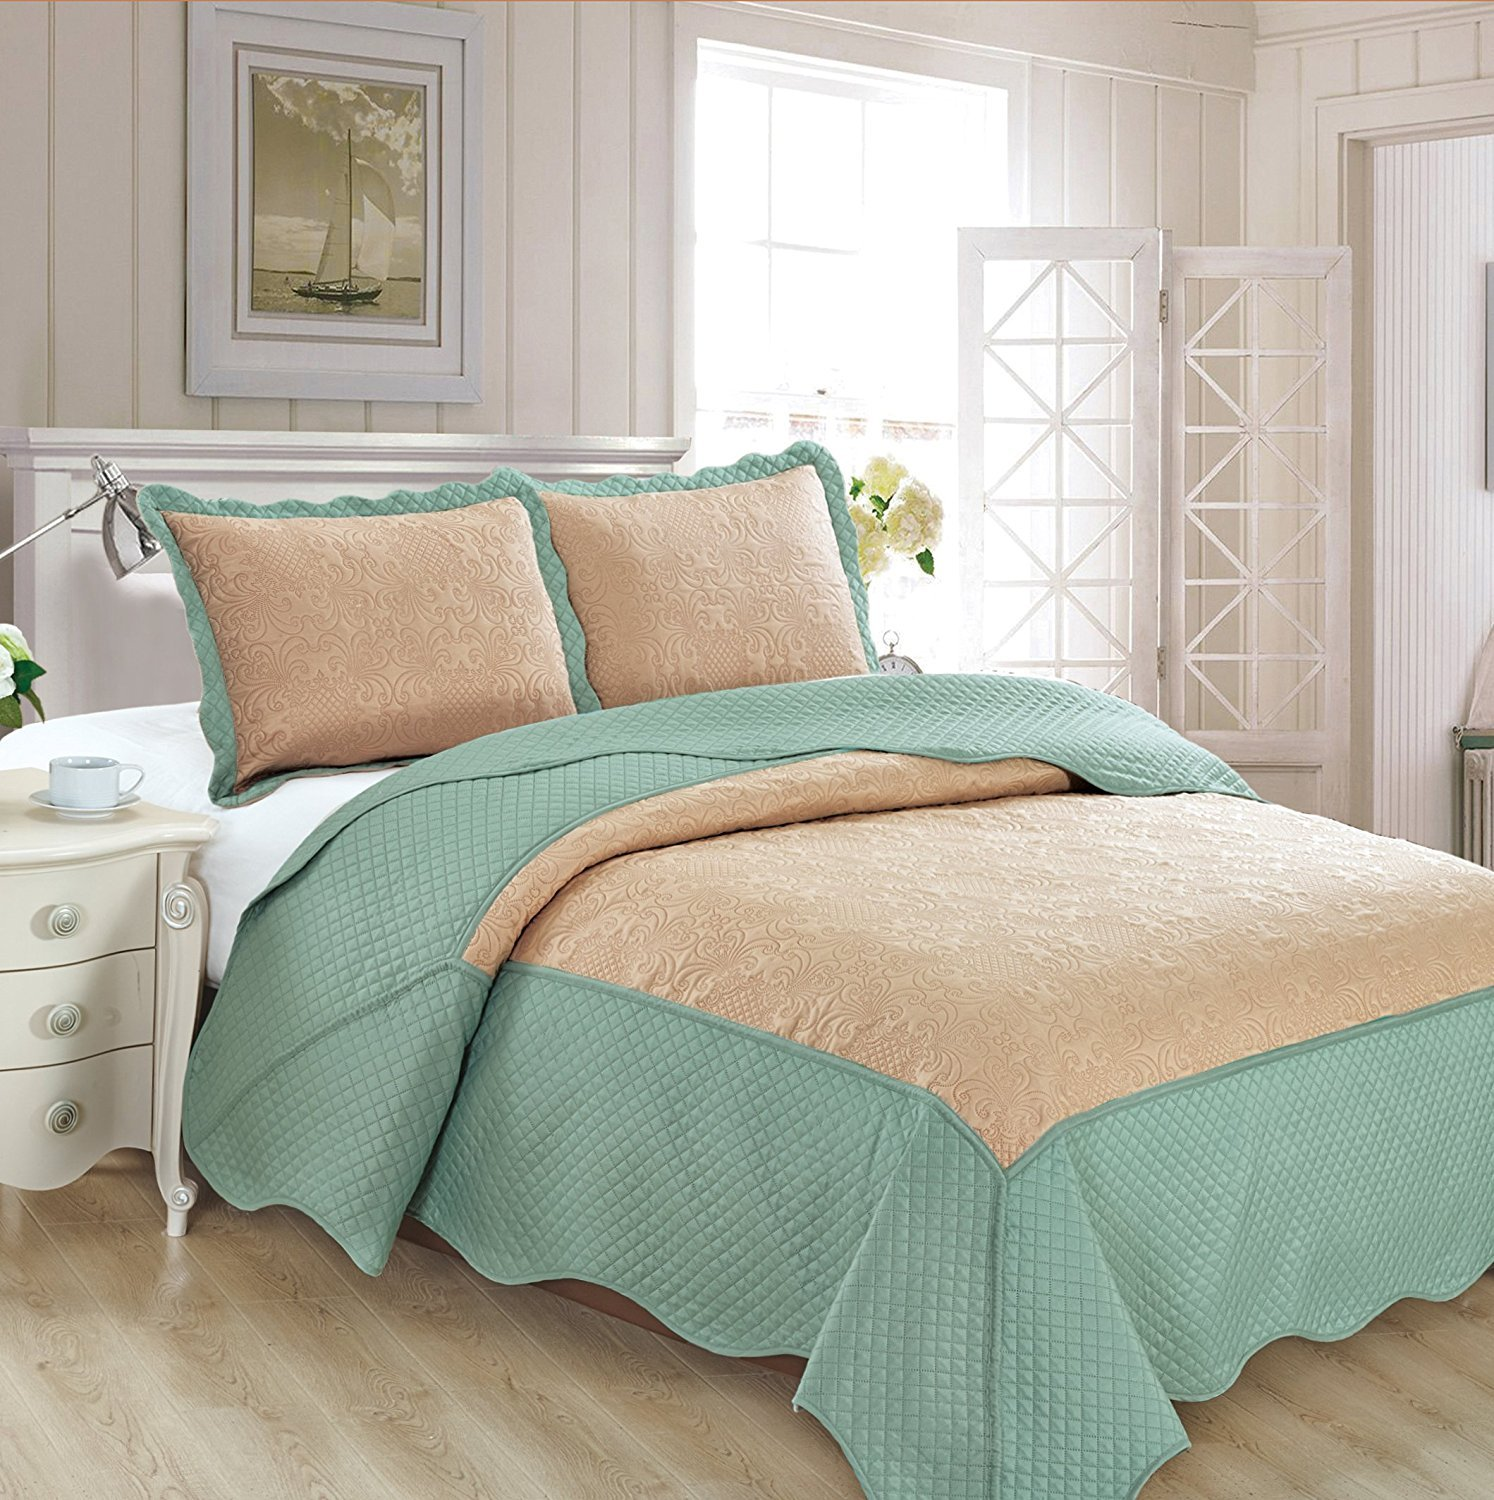 Mk Collection 3pc King/California King Oversize Coverlet Bedspread Set Luxury Embossed Solid Tow Tune Taupe/Spa Blue New